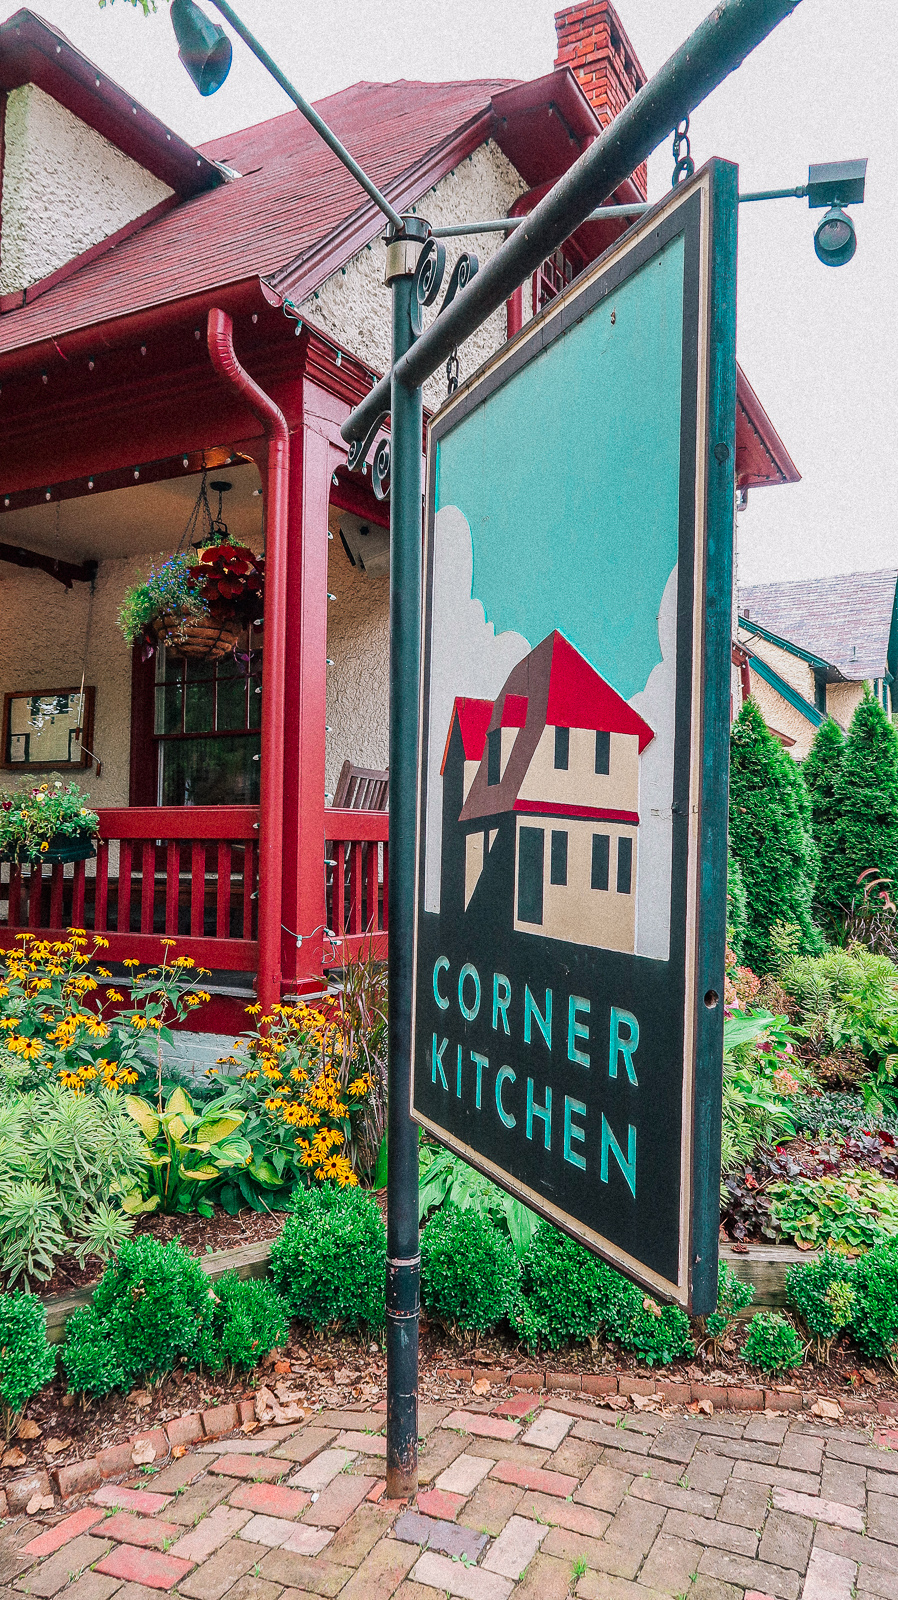 Corner Kitchen Biltmore Village Asheville NC